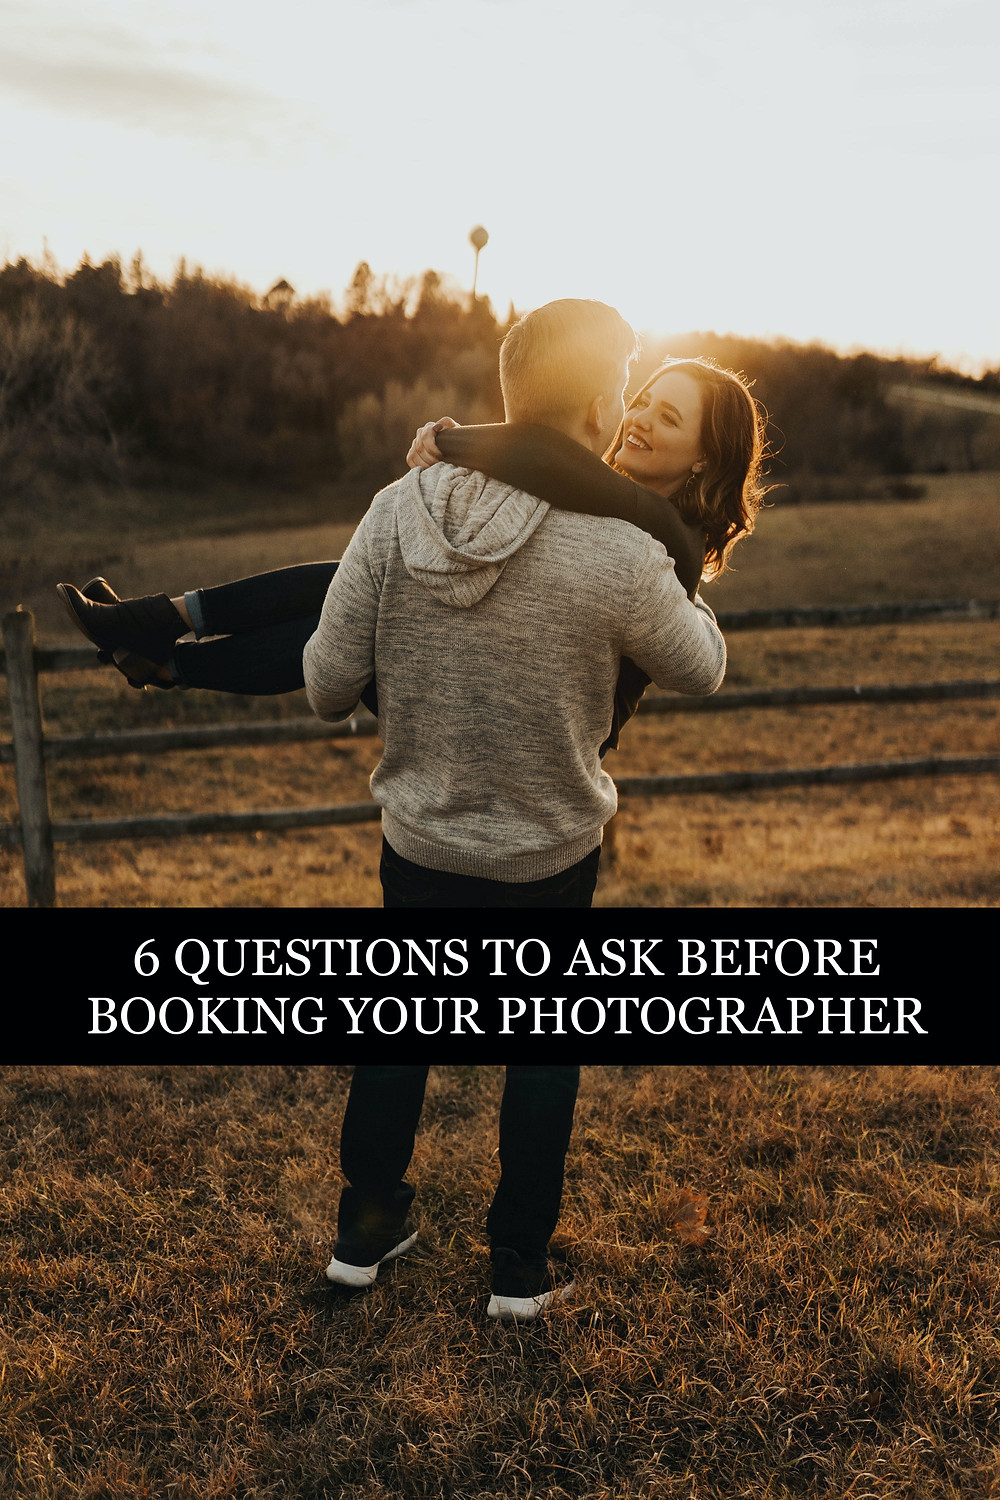 6 QUESTIONS TO ASK BEFORE BOOKING YOUR PHOTOGRAPHER